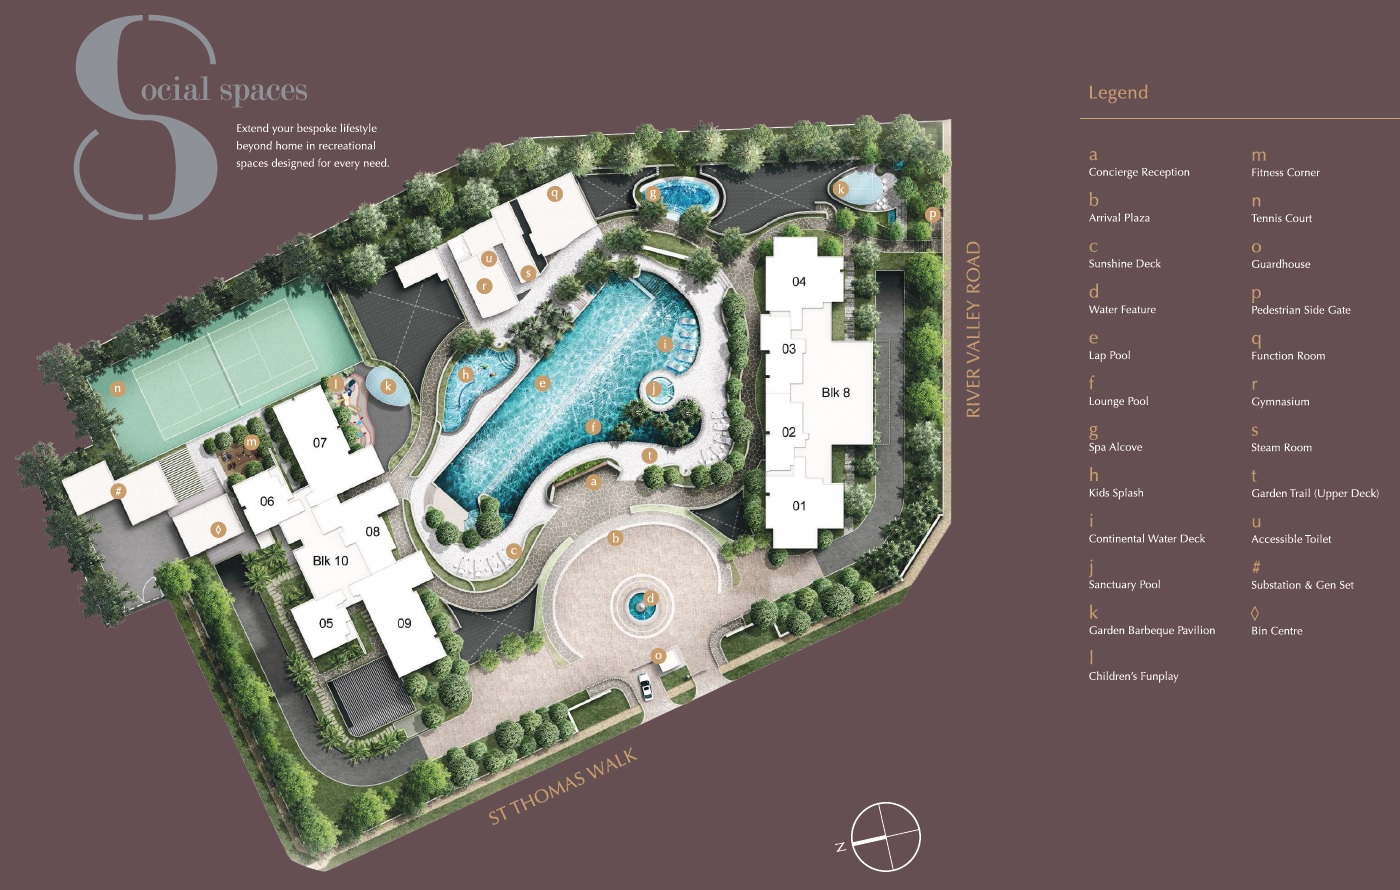 8 st thomas site plan